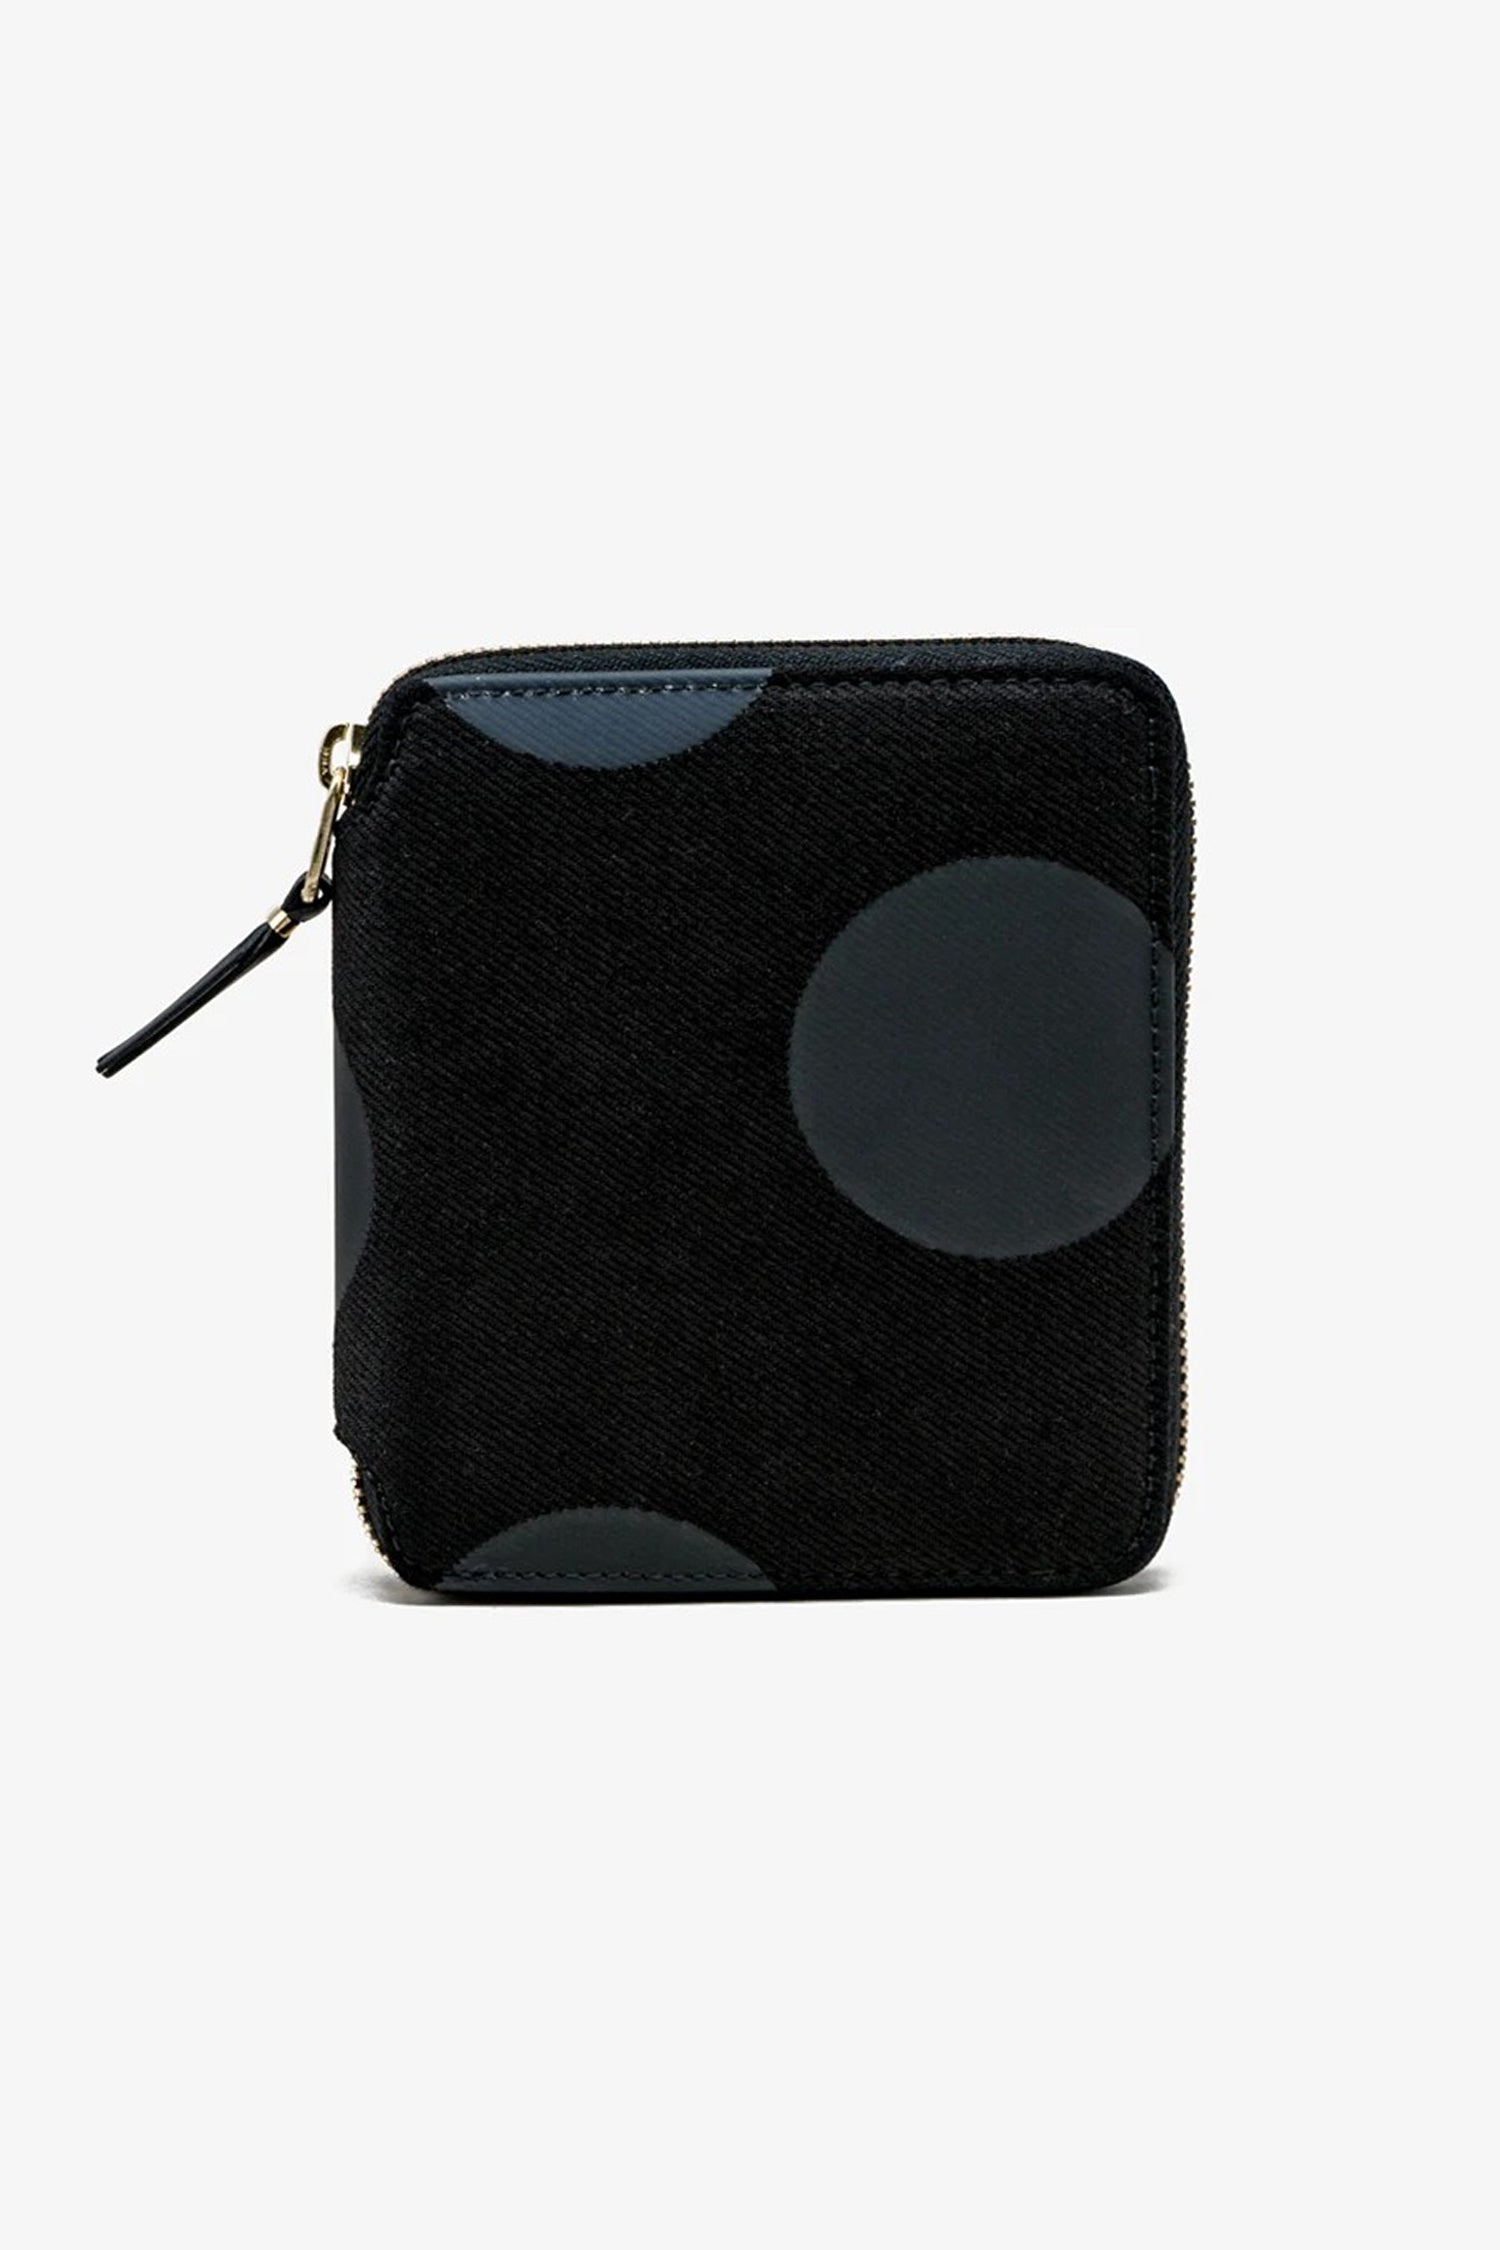 Selectshop FRAME - COMME DES GARCONS WALLETS Rubber Dot Group Wallet (SA2100PD) Wallet Dubai